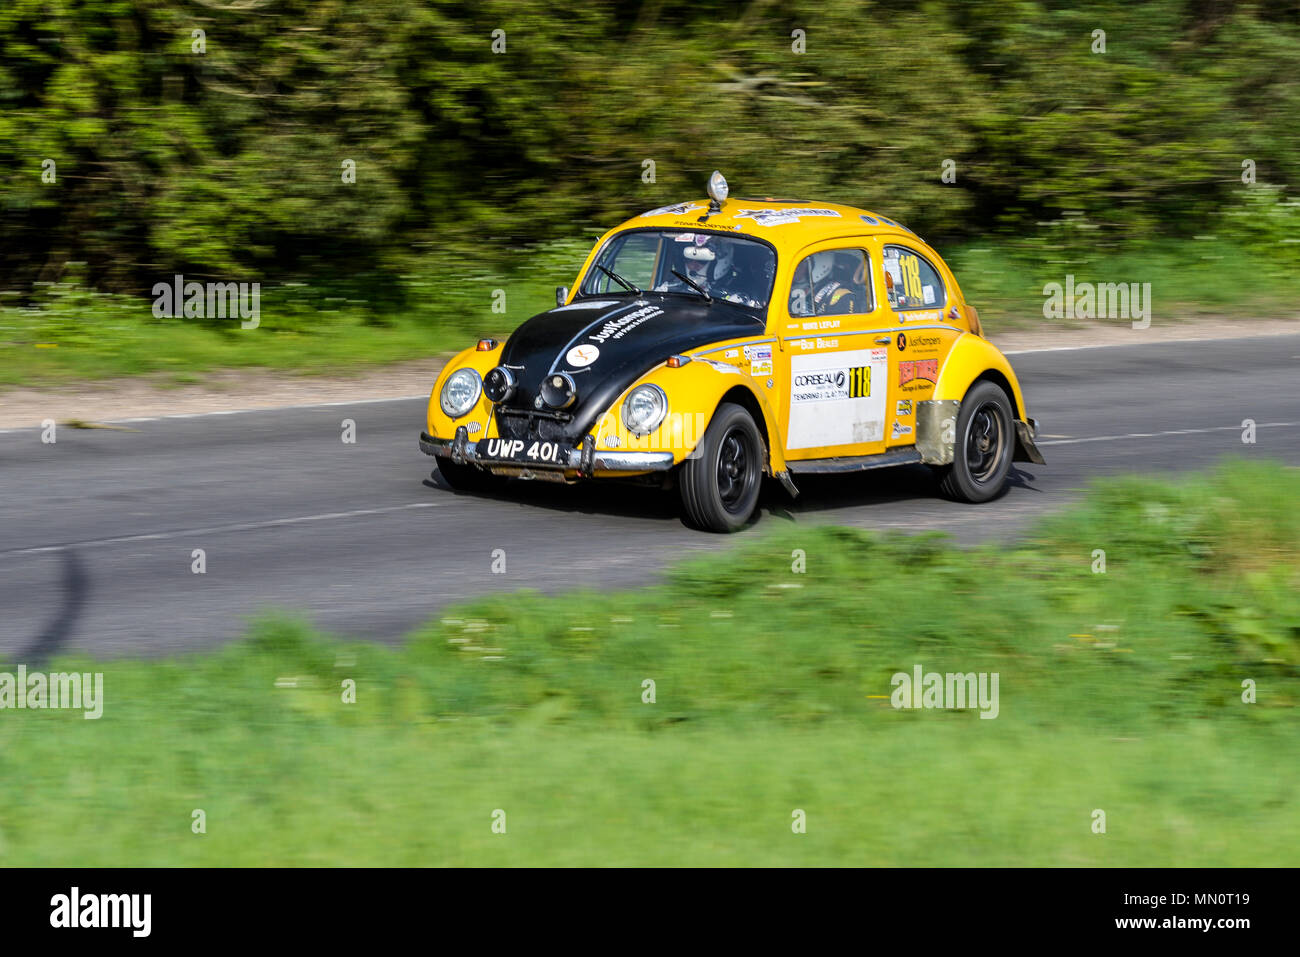 Robert Beales driver Mike Leflay co driver racing VW Beetle in the closed public road Corbeau Seats car Rally Tendring and Clacton, Essex, UK - Stock Image